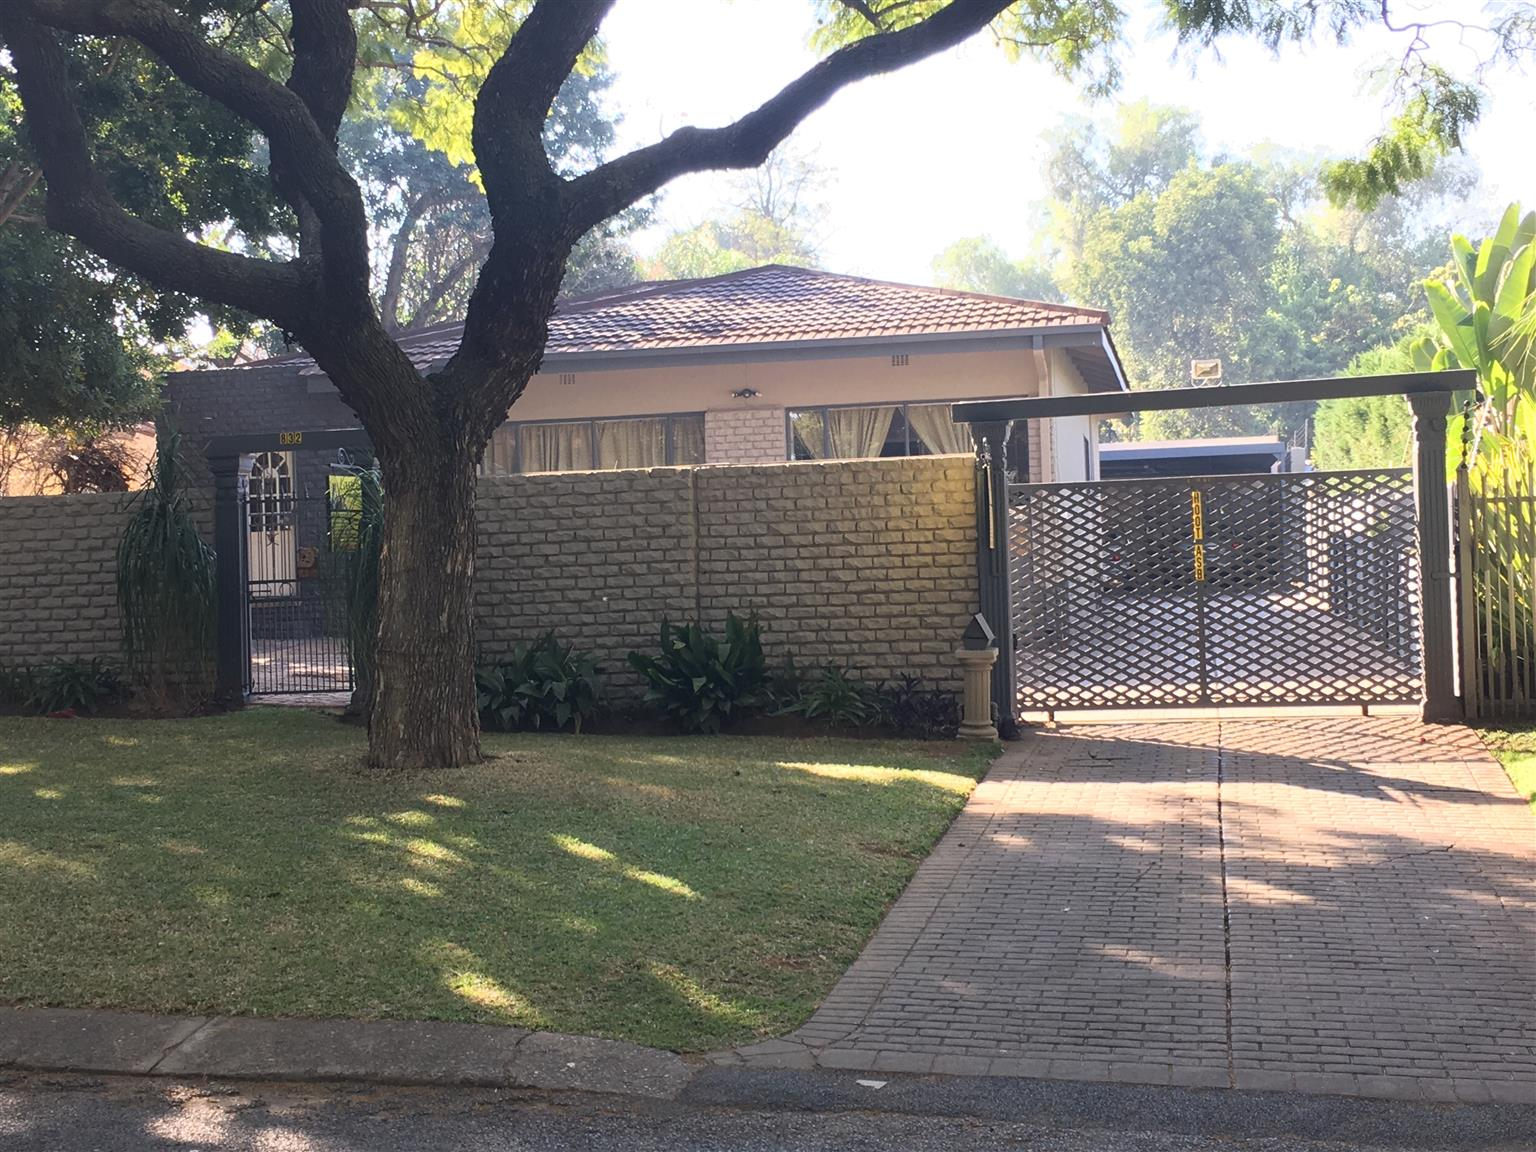 27TH 832 B NEWLY RENOVATED 1 BEDROOM GARDEN COTTAGE FOR R 4 100 IN RIETFONTEIN